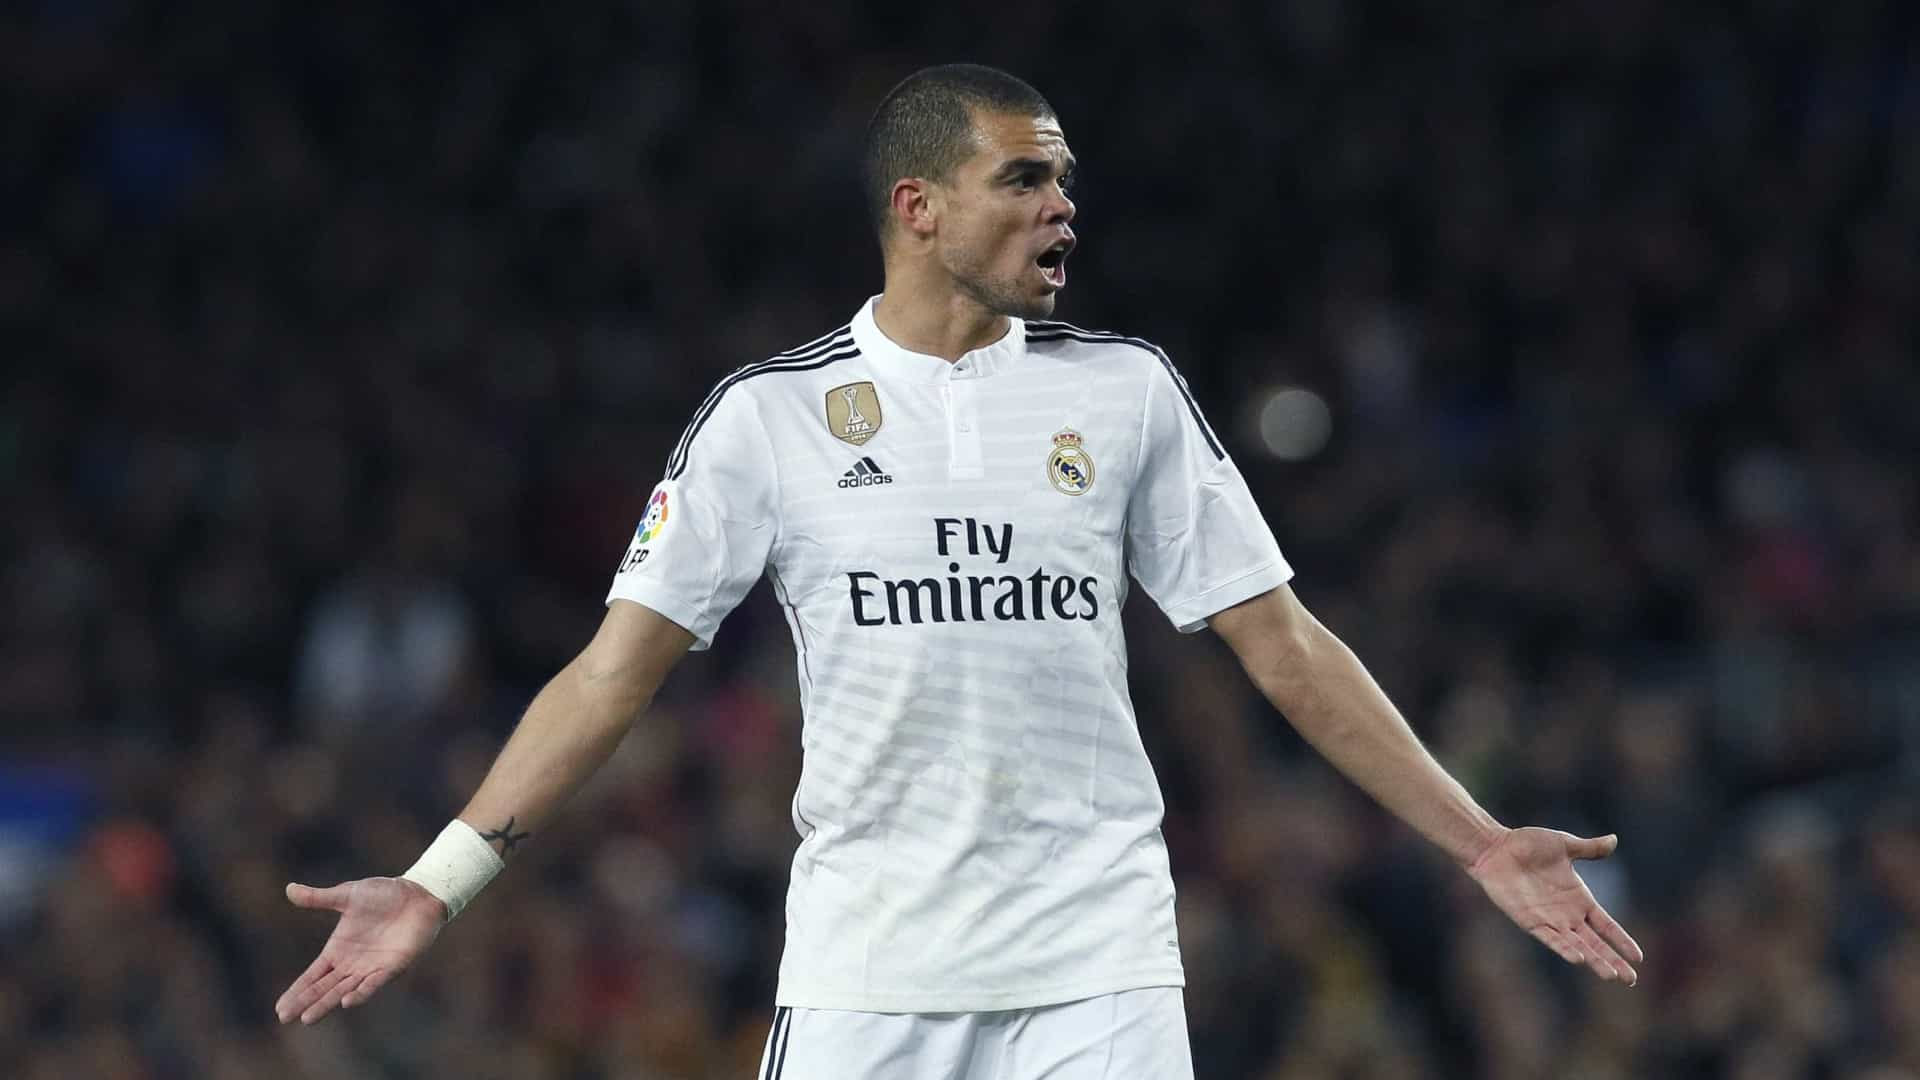 Mercado: Pepe dado como certo no Paris Saint-Germain